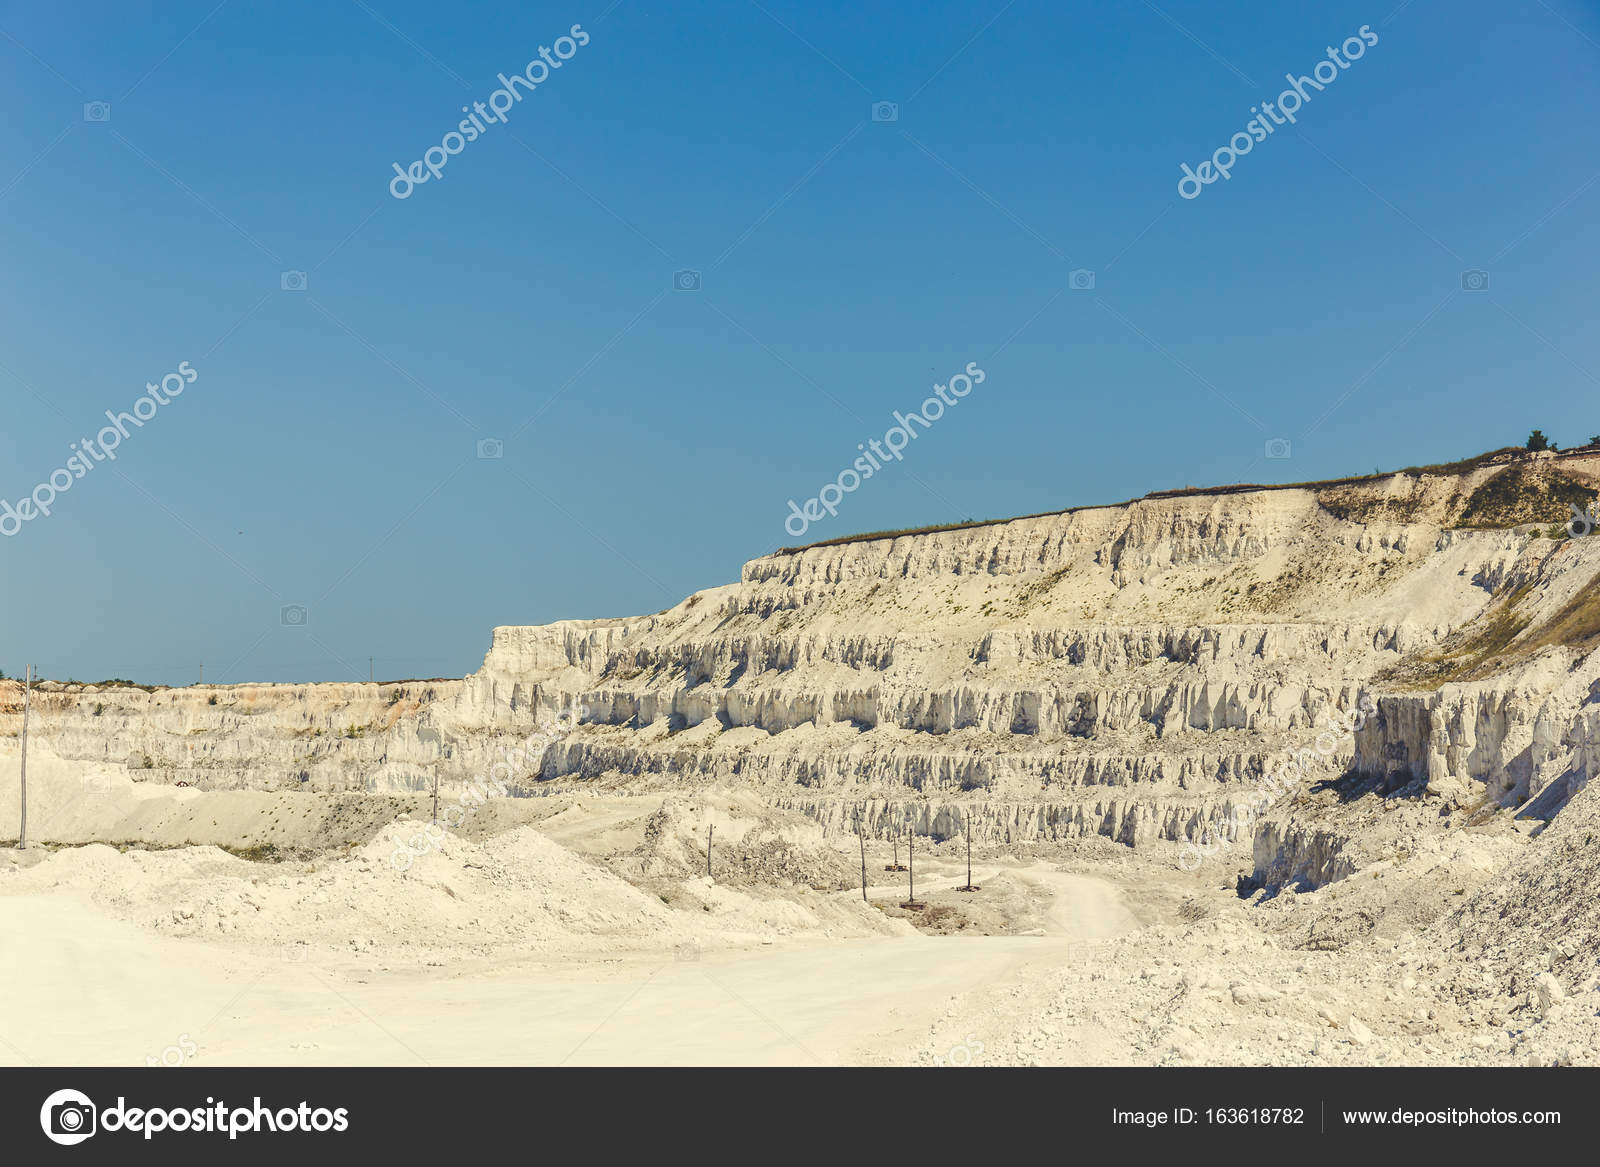 White yellow open cast limestone mining quarry at blue sky